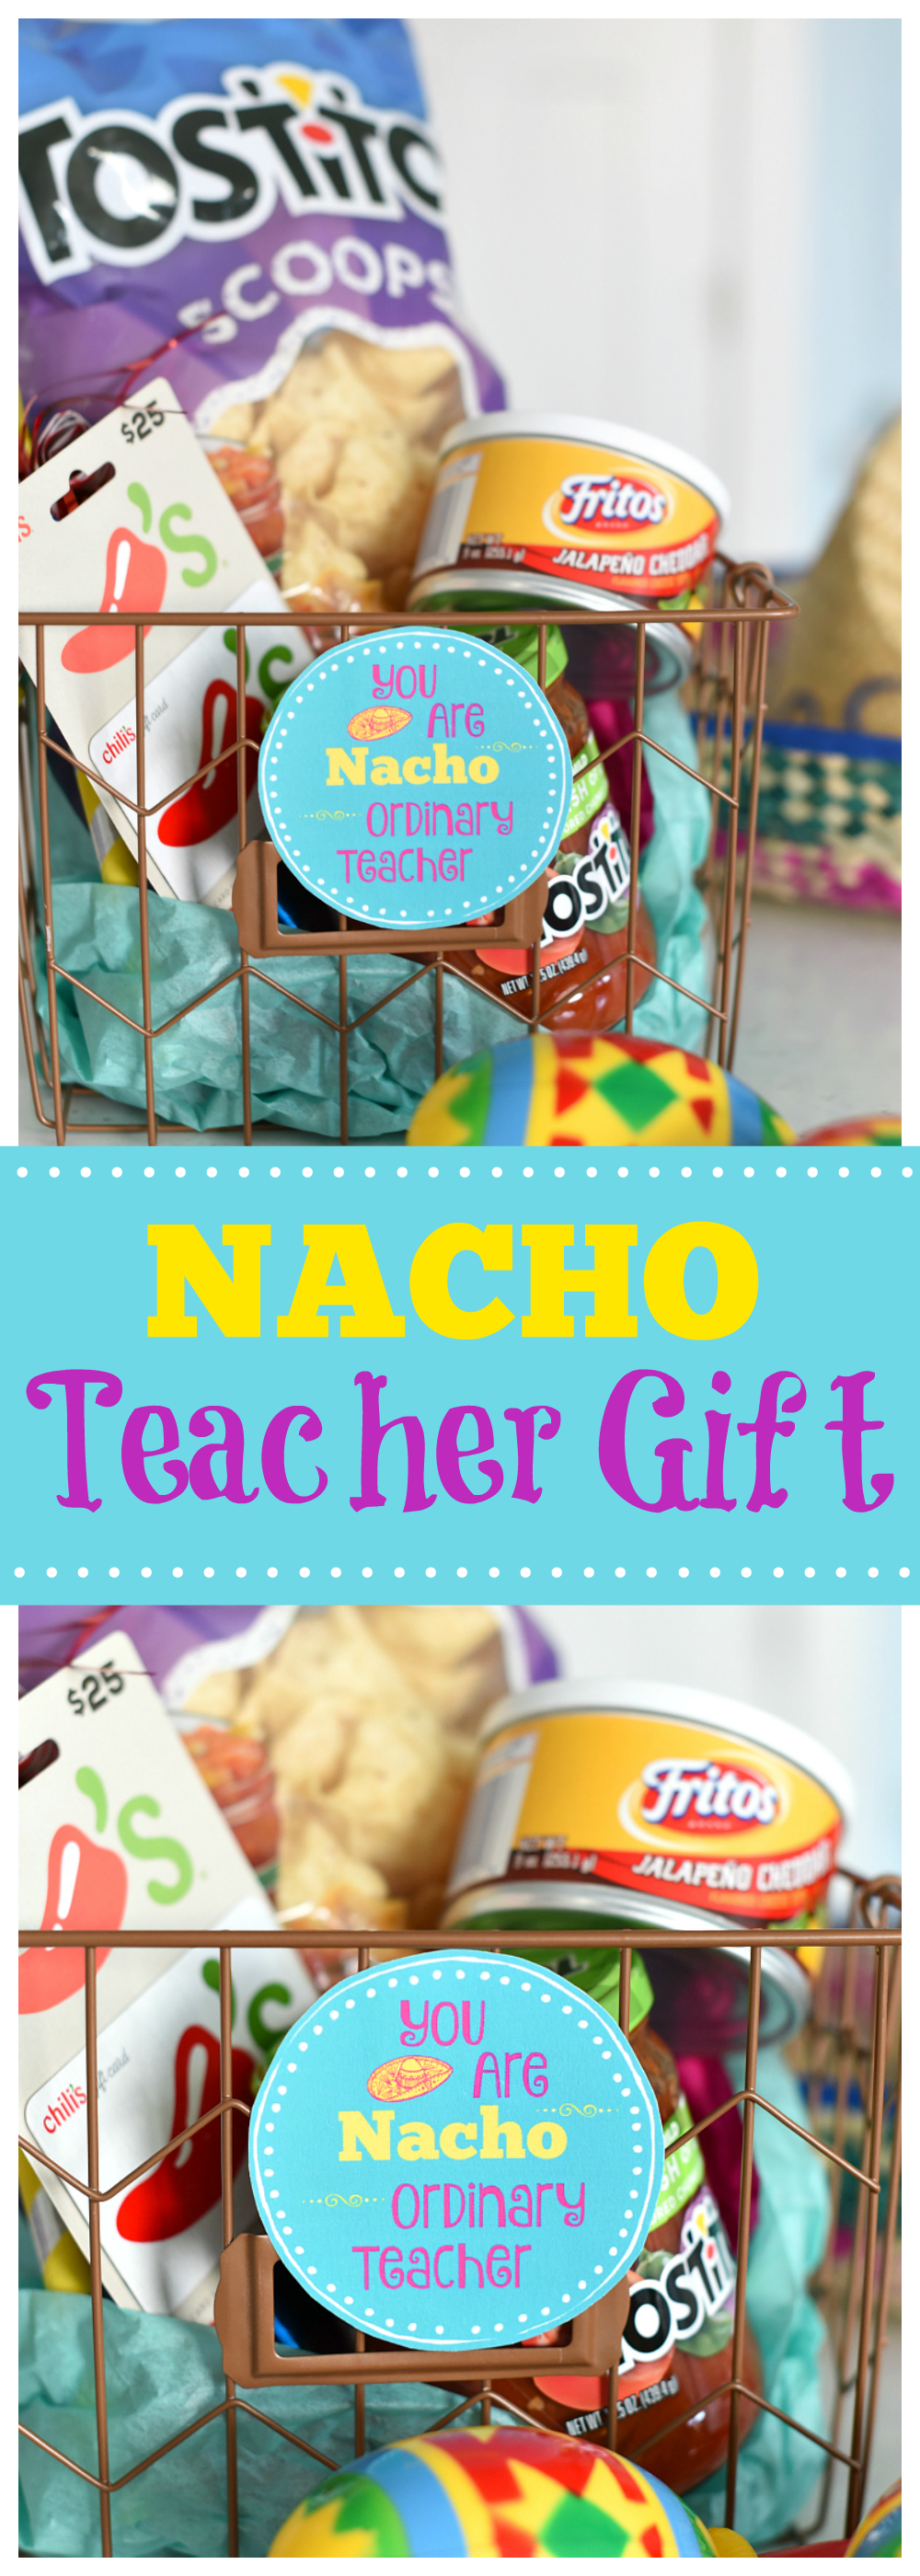 Punny Teacher Gifts-You are NACHO ordinary teacher. Such a cute and creative teacher gift that is easy to put together and something unique that your teacher will love! #teachergifts #teachergiftidea #teacherappreciation #teacherappreciationweek